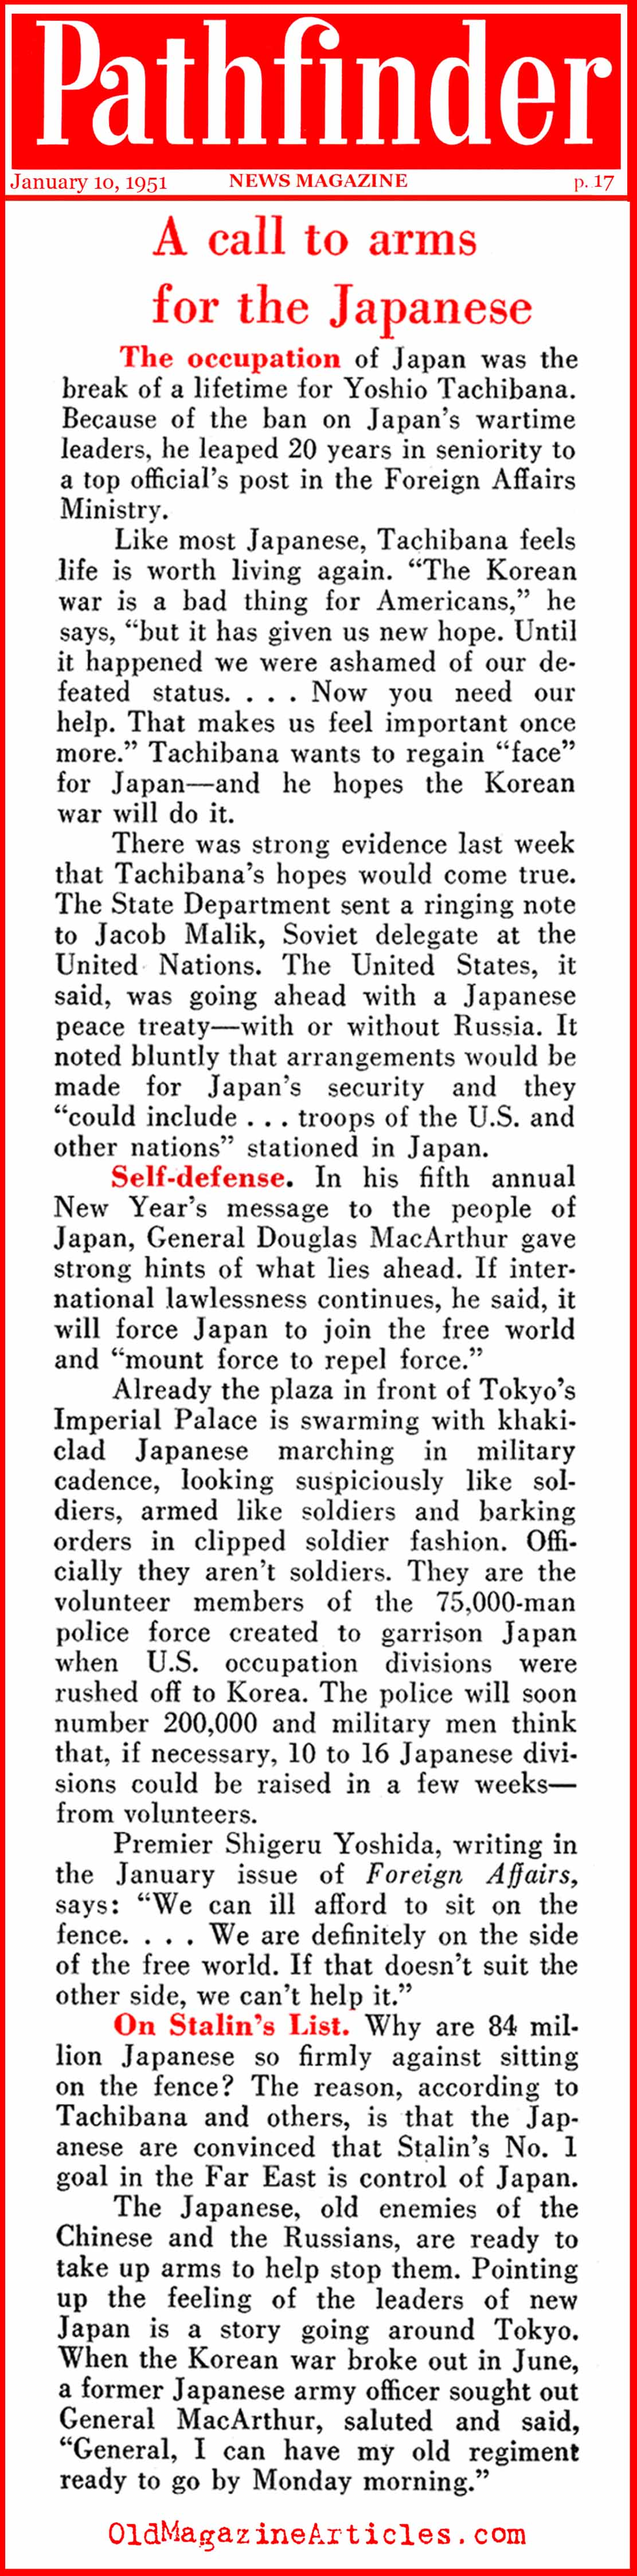 Japan Chipped-In (Pathfinder Magazine, 1951)